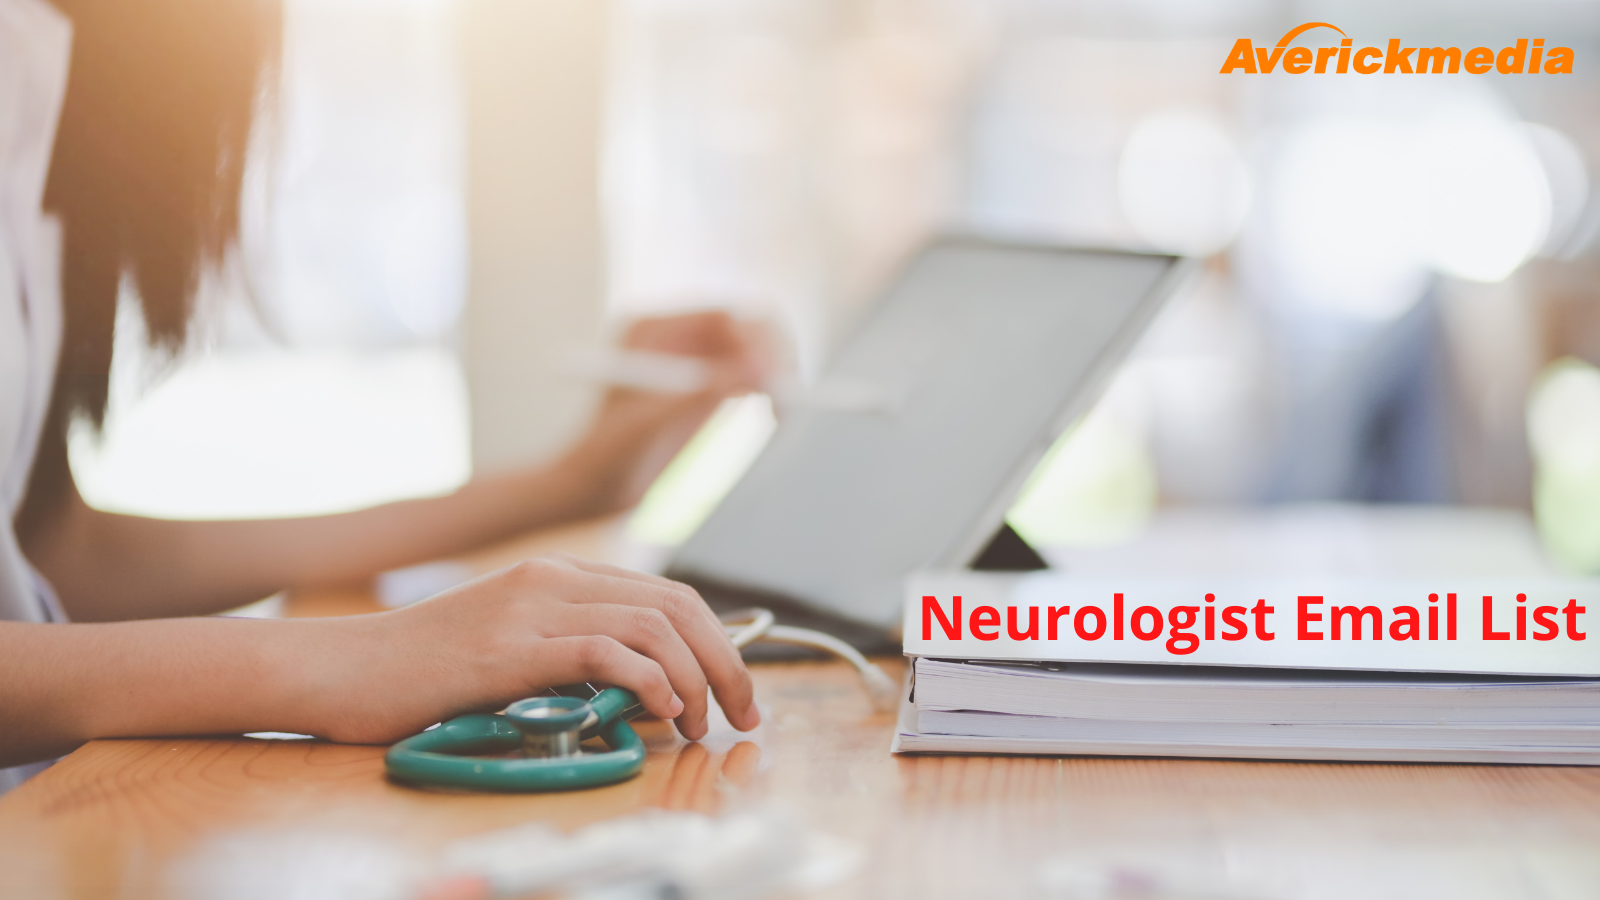 All you need to know about gaining access to the ideal Neurologist Email List